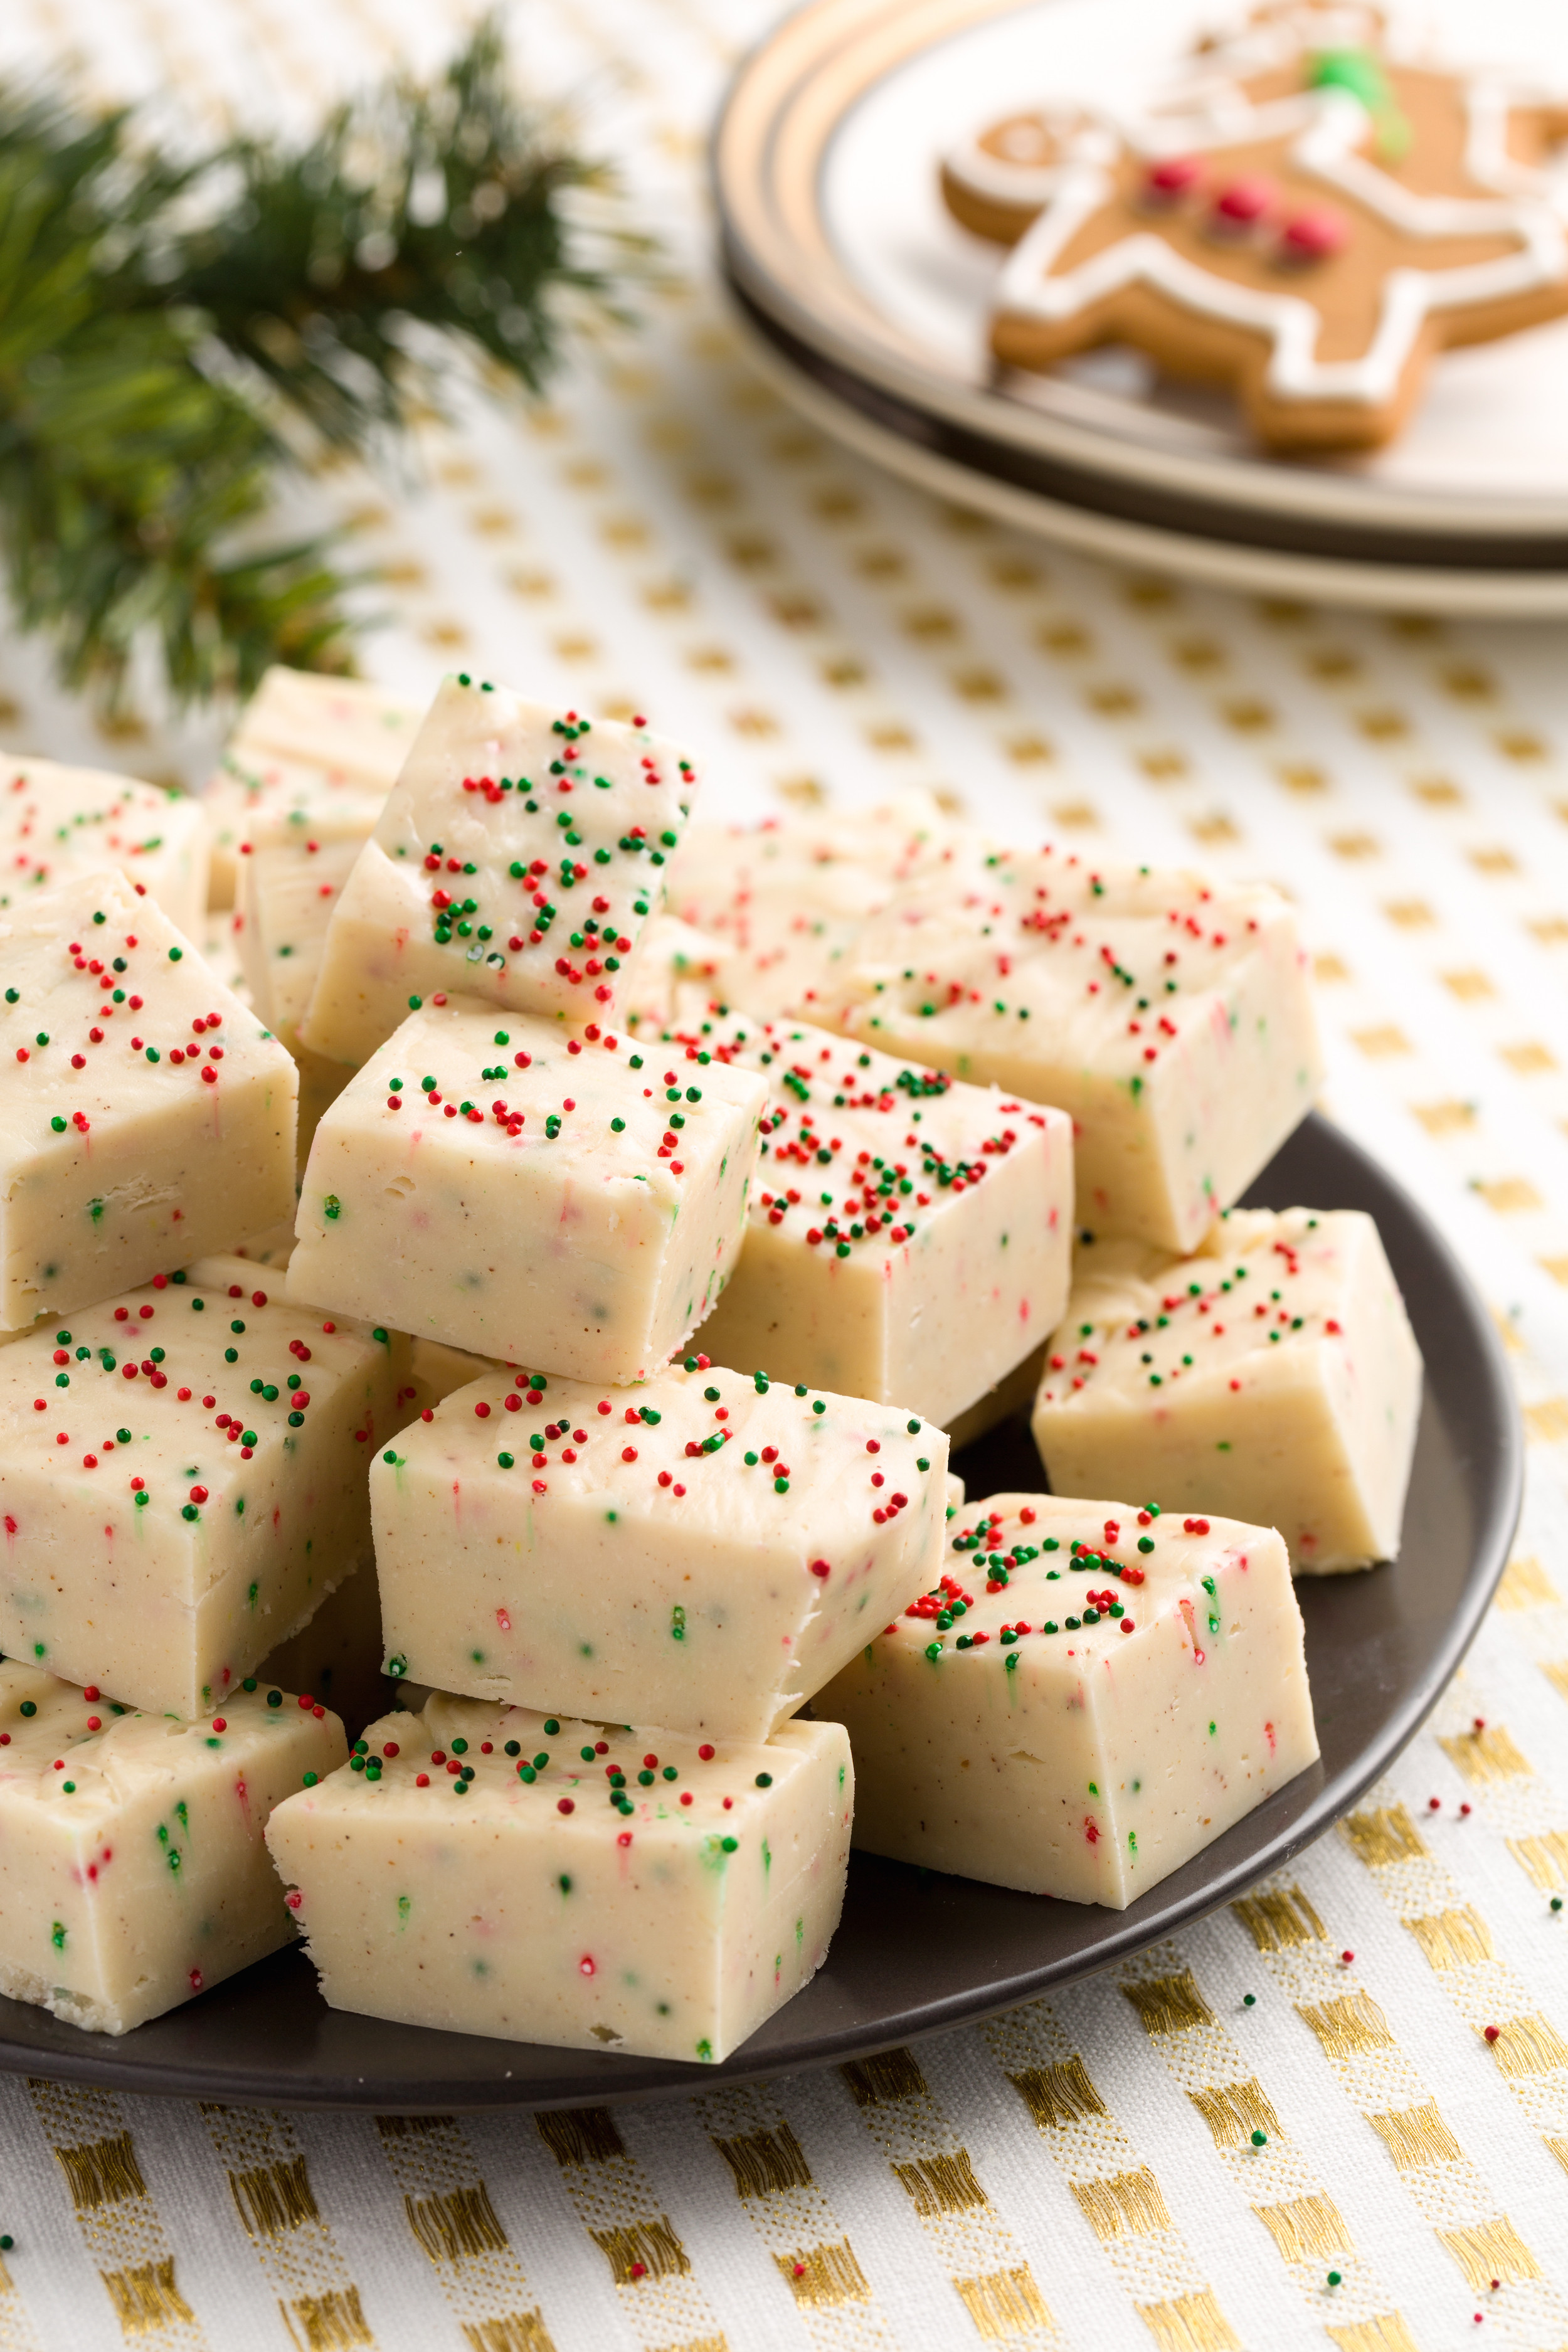 Making Christmas Candy  18 Easy Homemade Christmas Candy Recipes How To Make